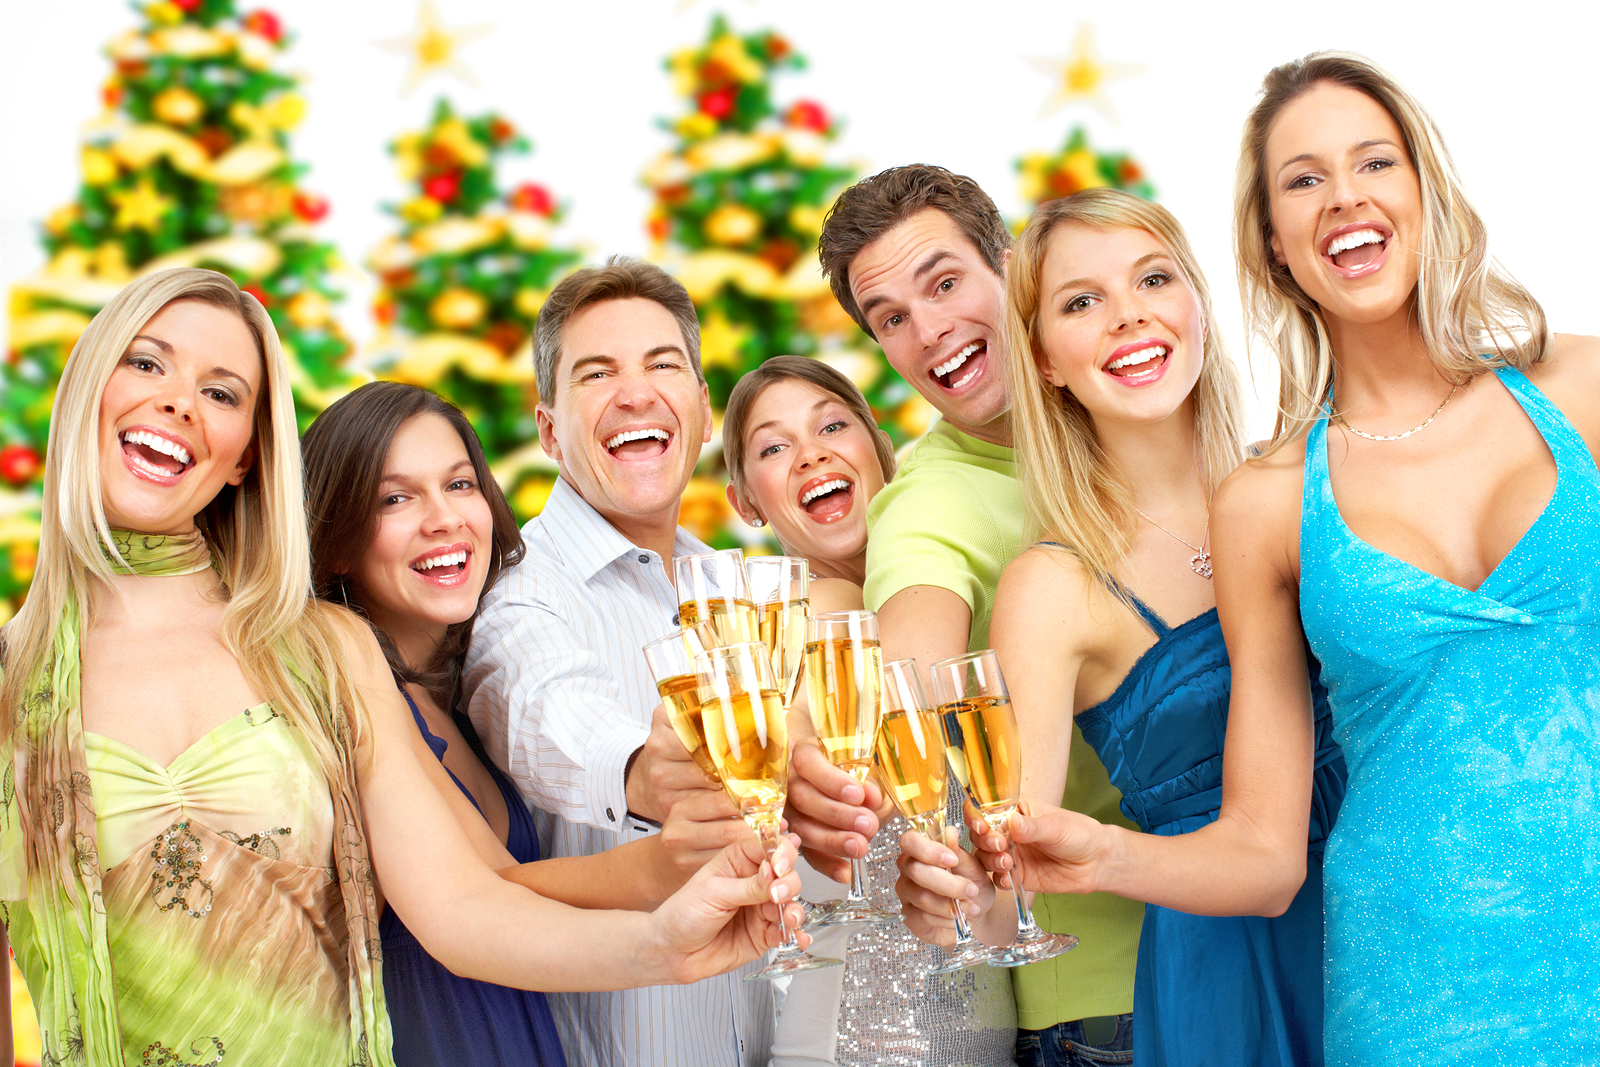 party christmas holiday happy planning background malaysian funny malay events tips resort fbt festive season organise late event too might